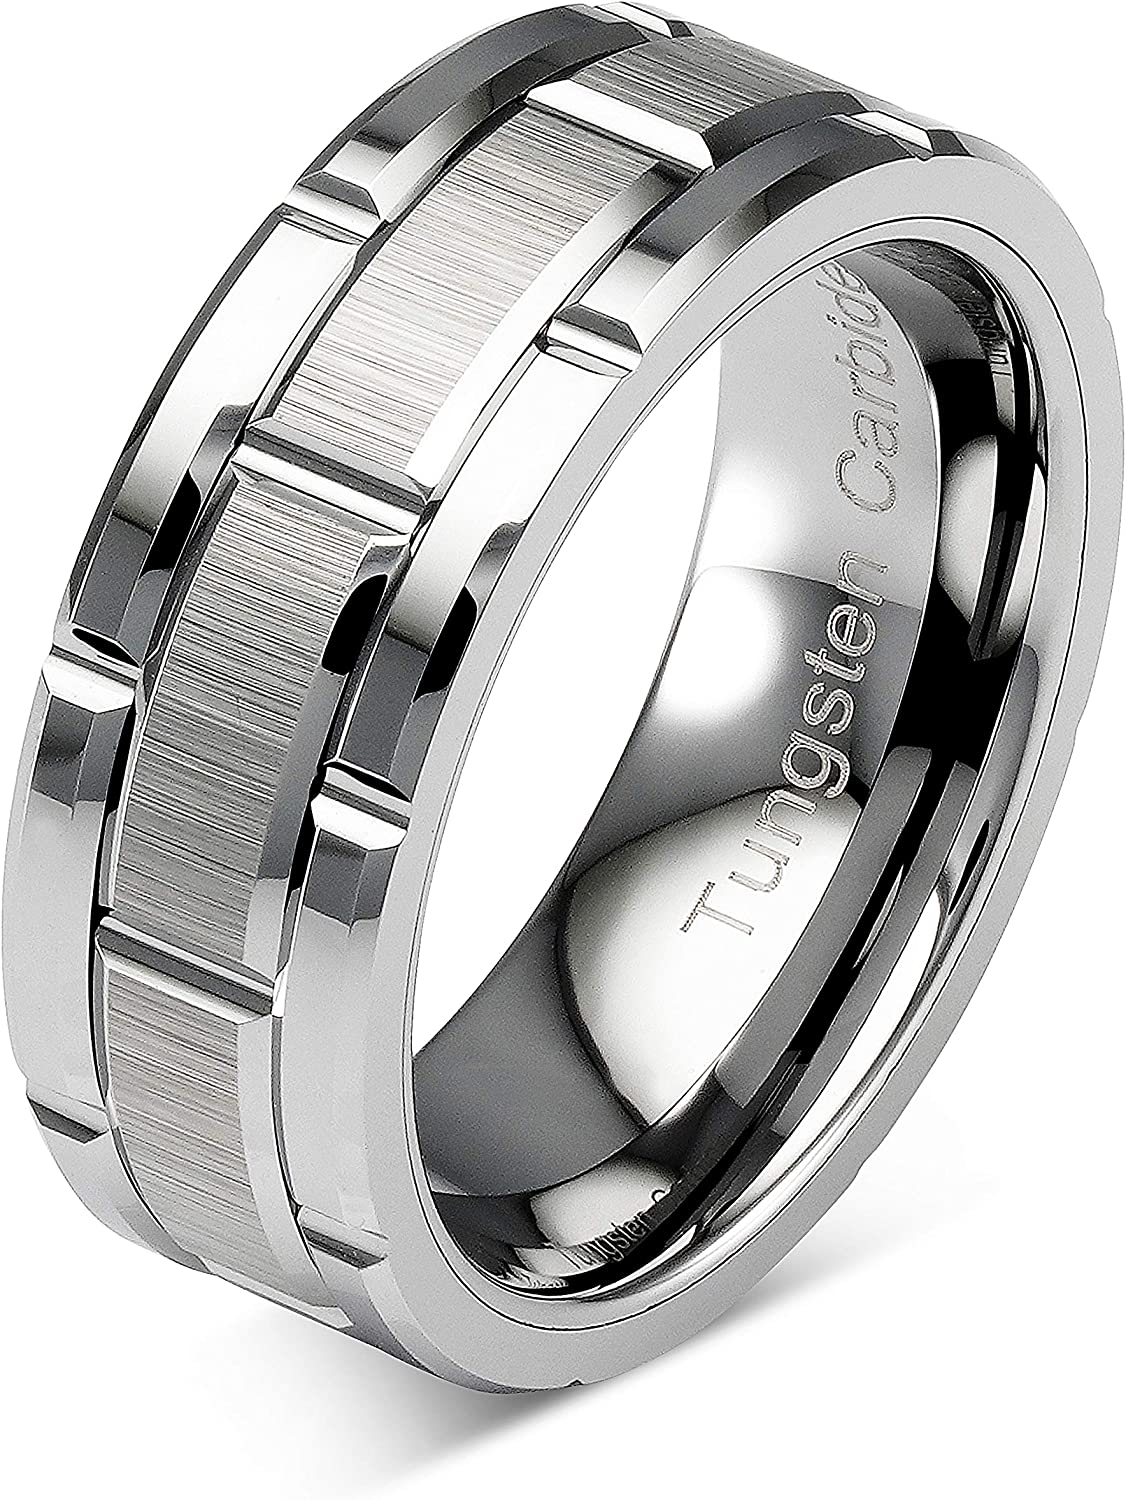 100S JEWELRY Tungsten Rings For Men Silver Band Pa Wedding Challenge the Free shipping on posting reviews lowest price of Japan Brick